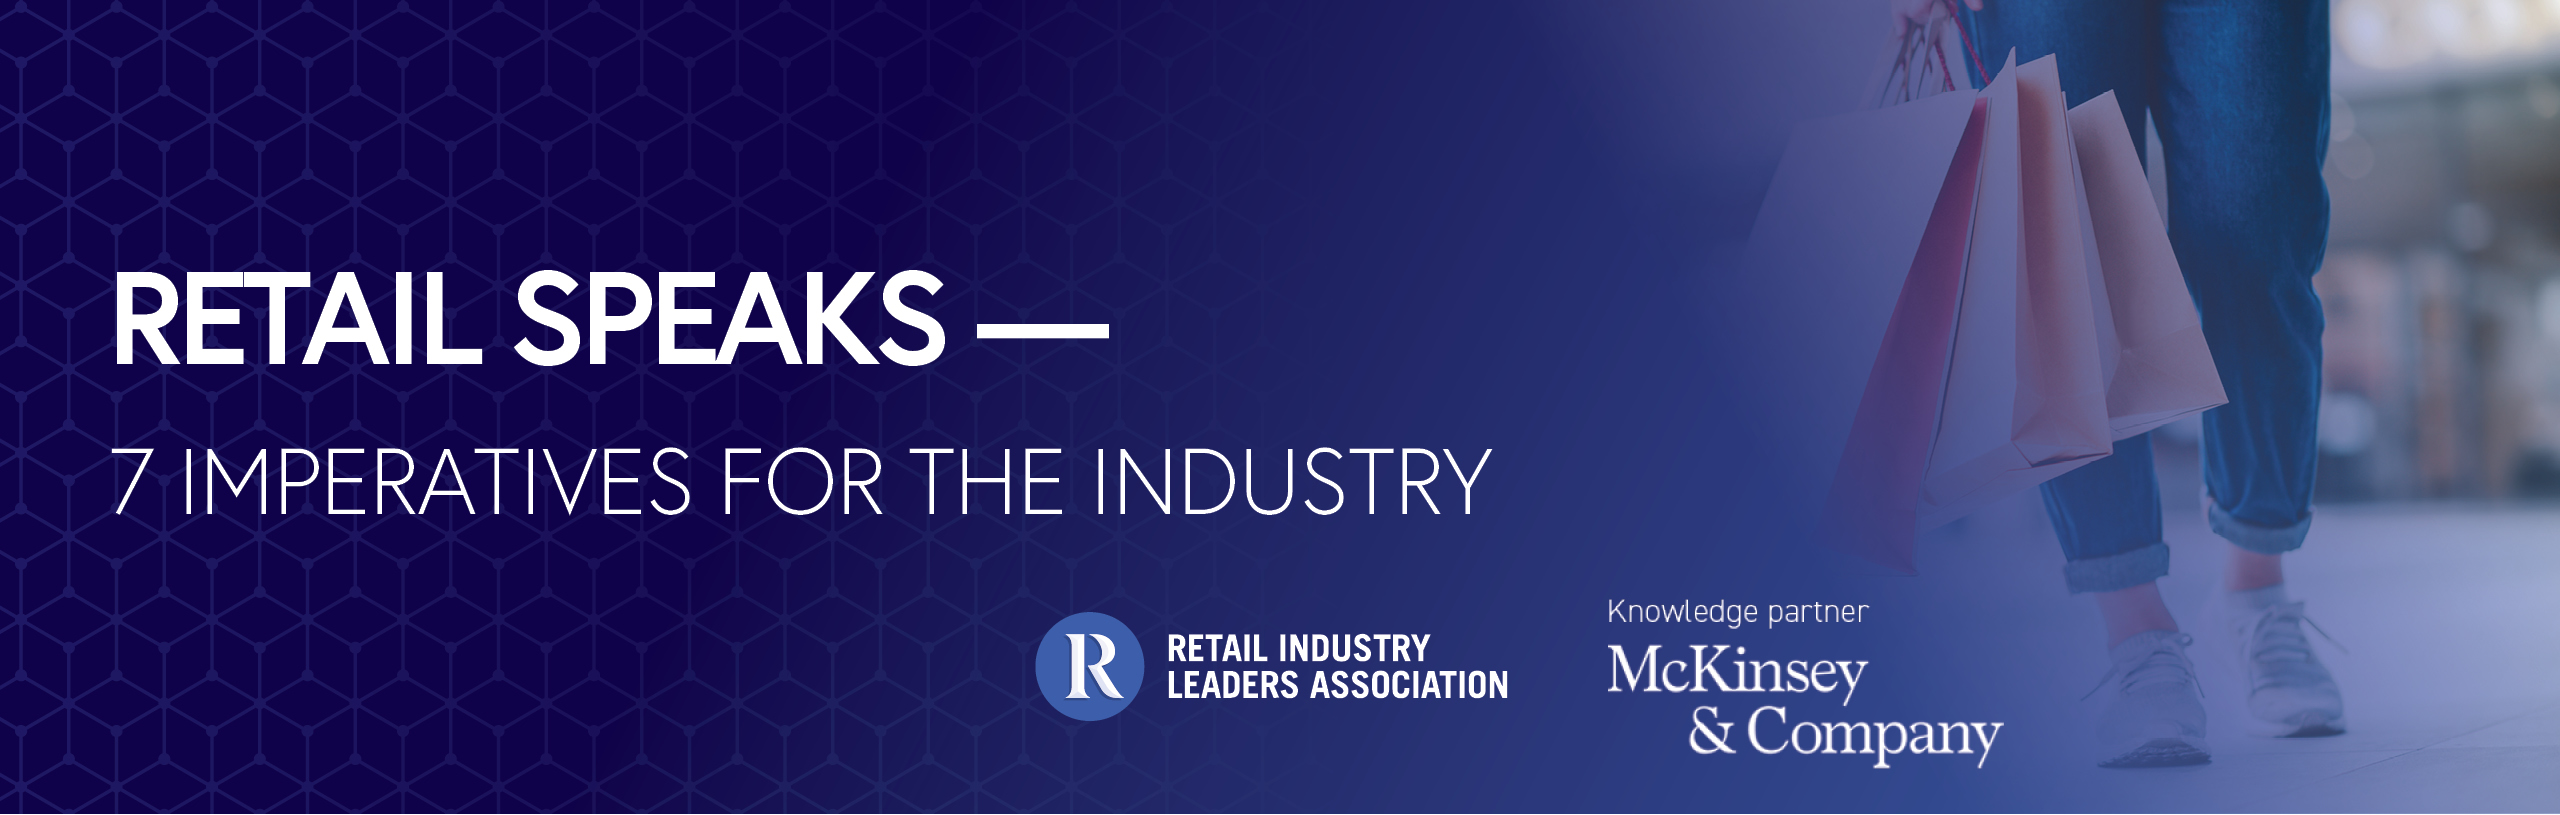 Retail Speaks: Seven imperatives for the industry. 2021 Retail Industry Outlook. Innovative retail trends to watch that will change the future of retail.